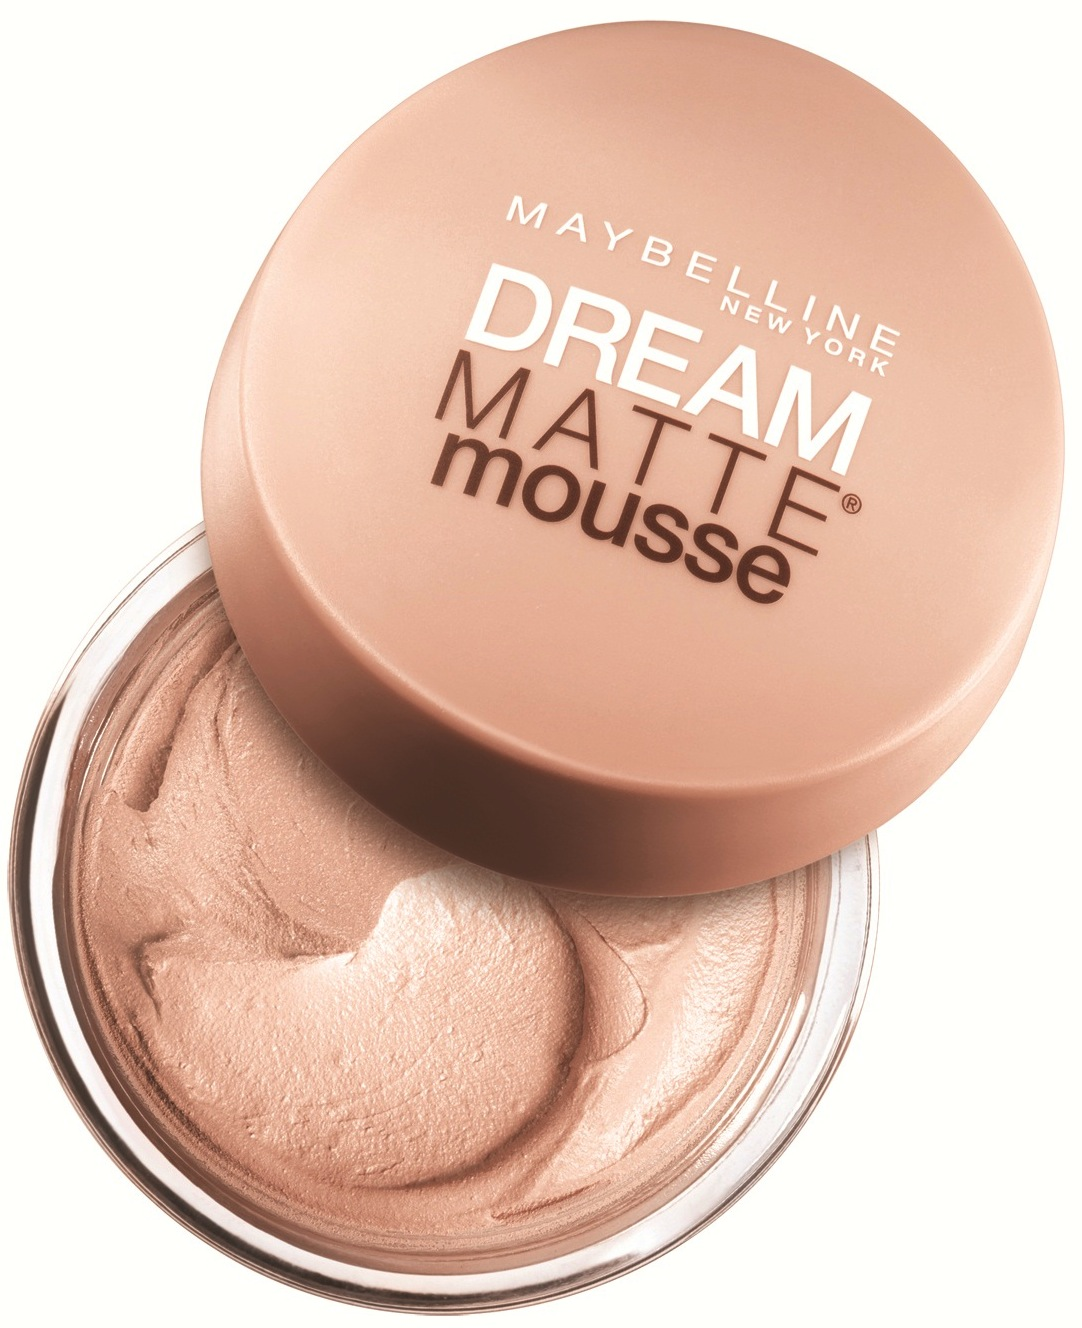 Kem nền Maybelline Dream Matte Mousse